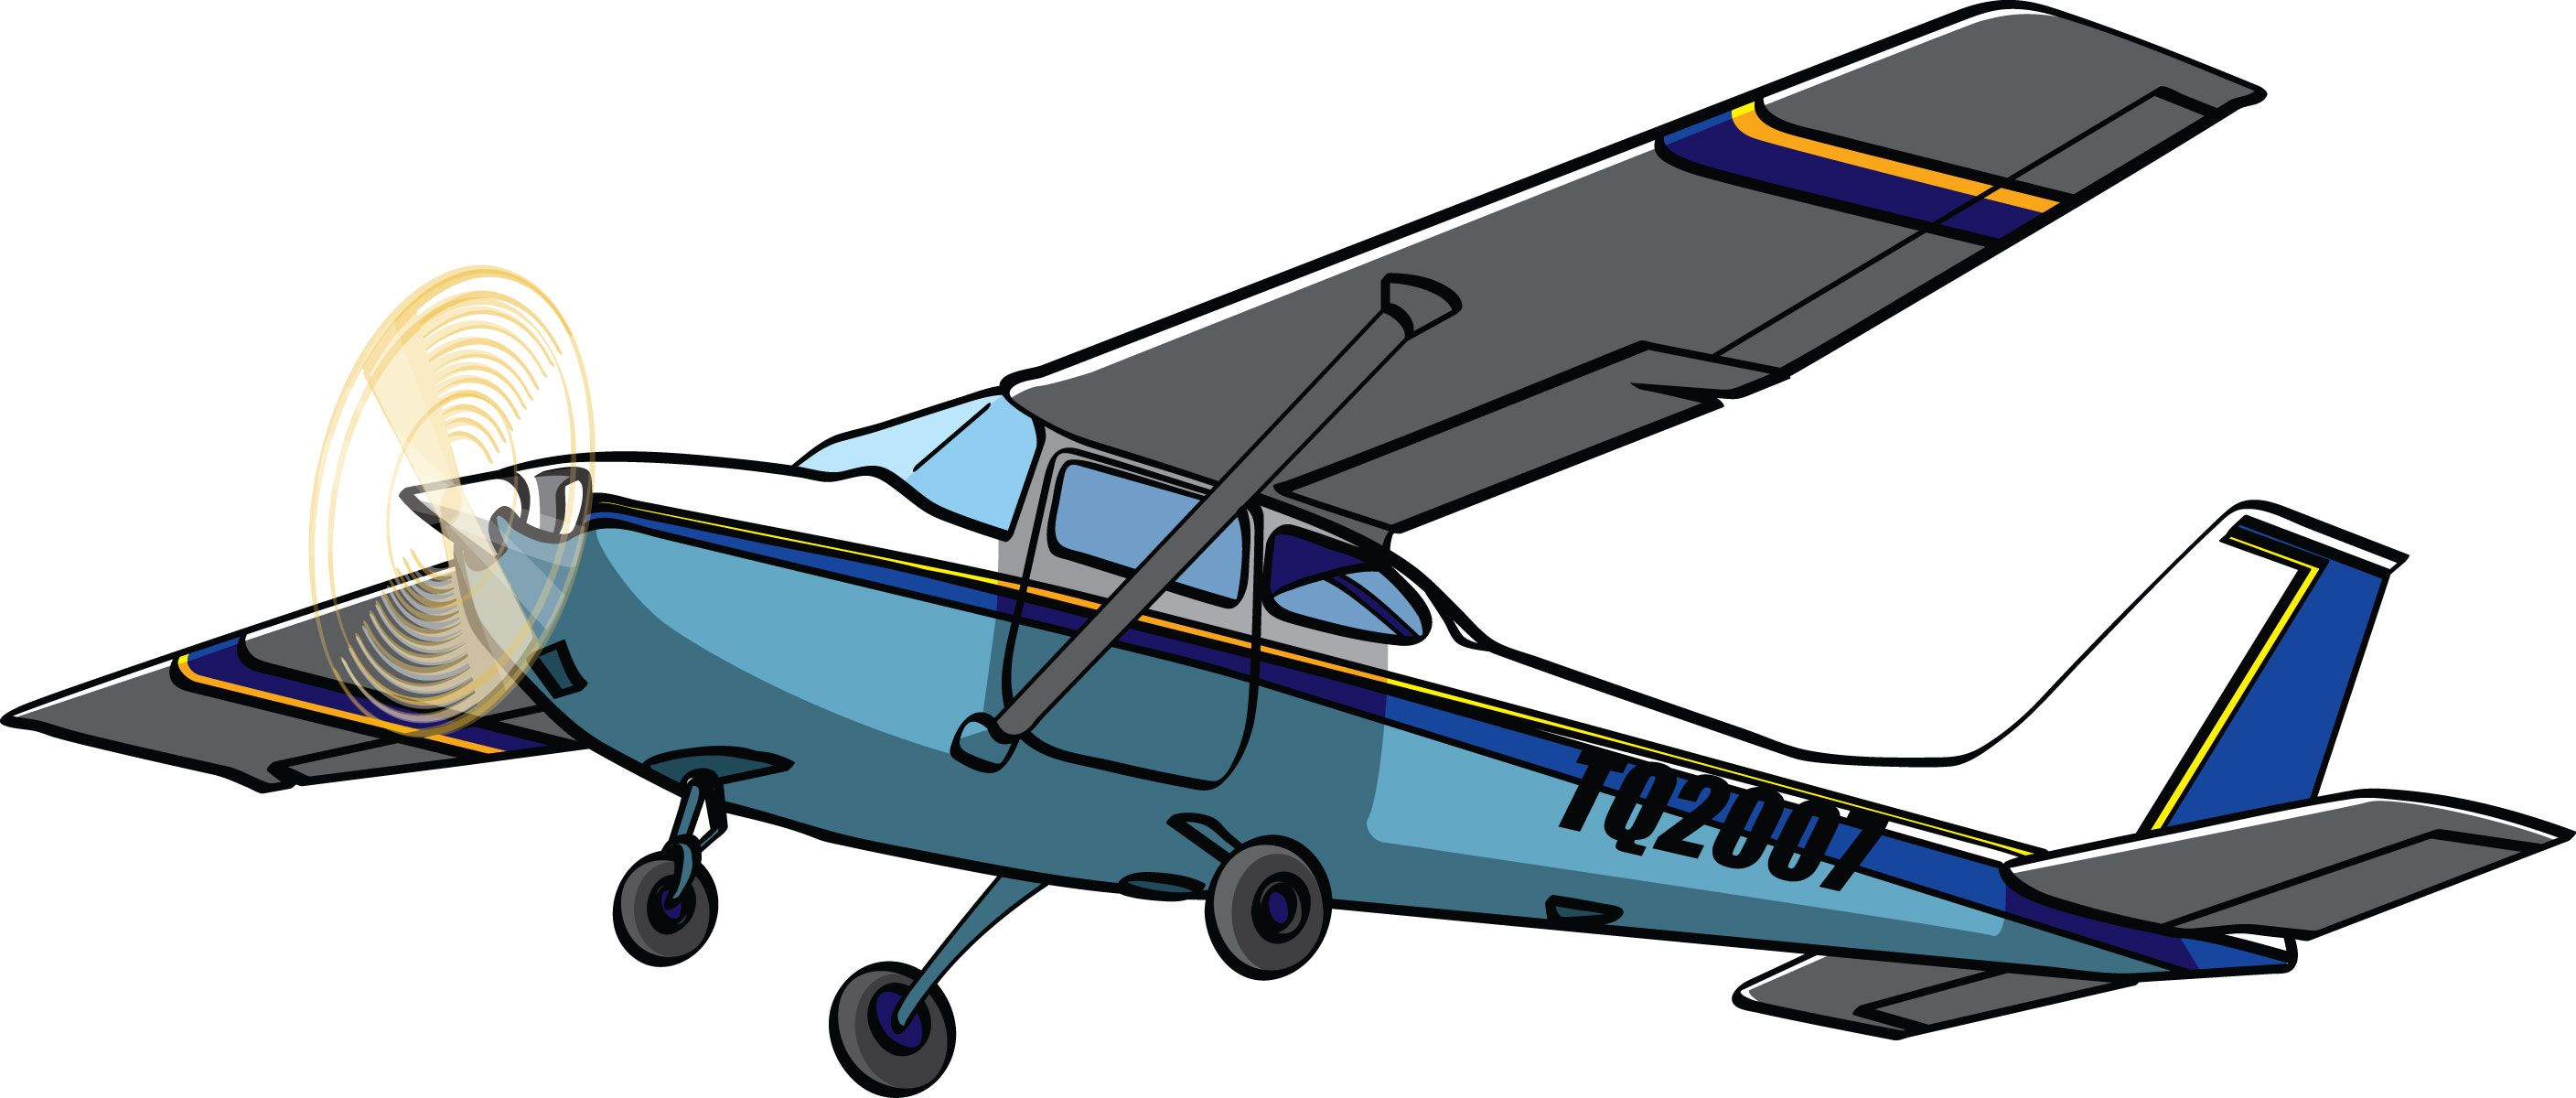 Cessna Airplane Clip Art Pictures to Pin on Pinterest.